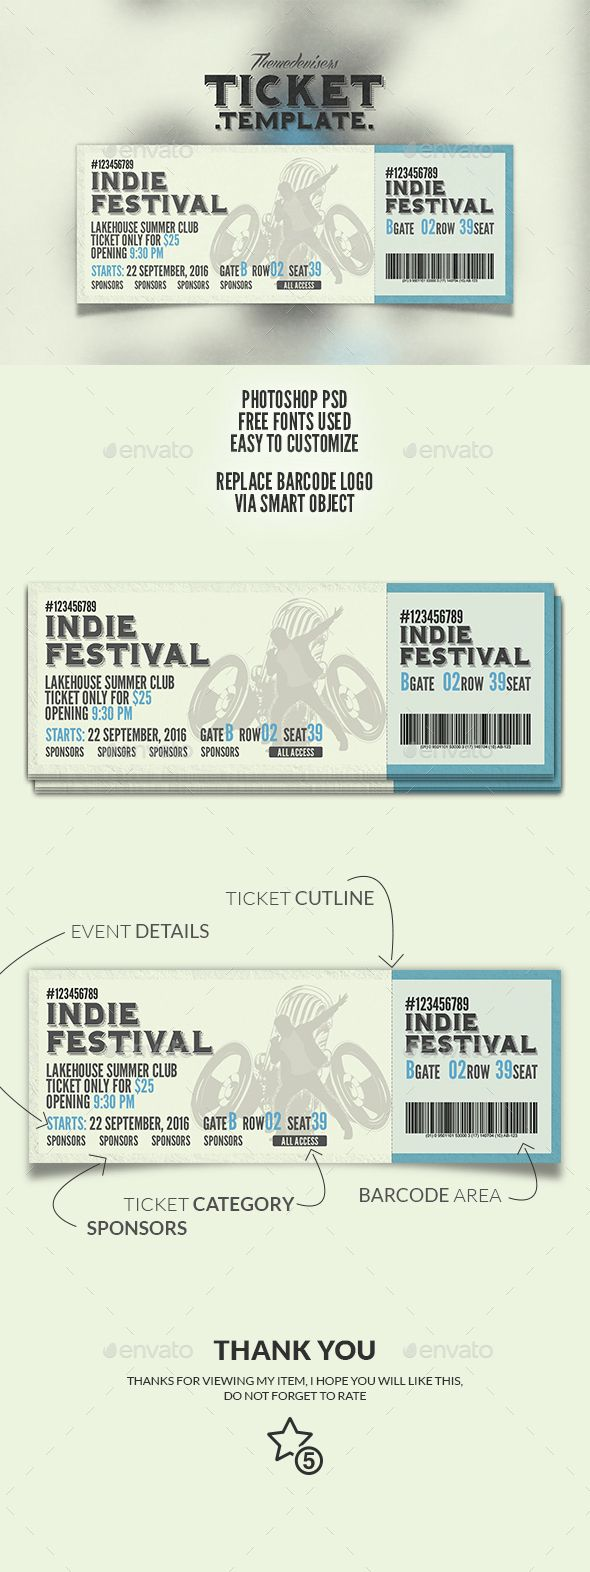 Event Ticket Template PSD. Download here: https://graphicriver.net/item/event-ticket/14759197?ref=ksioks